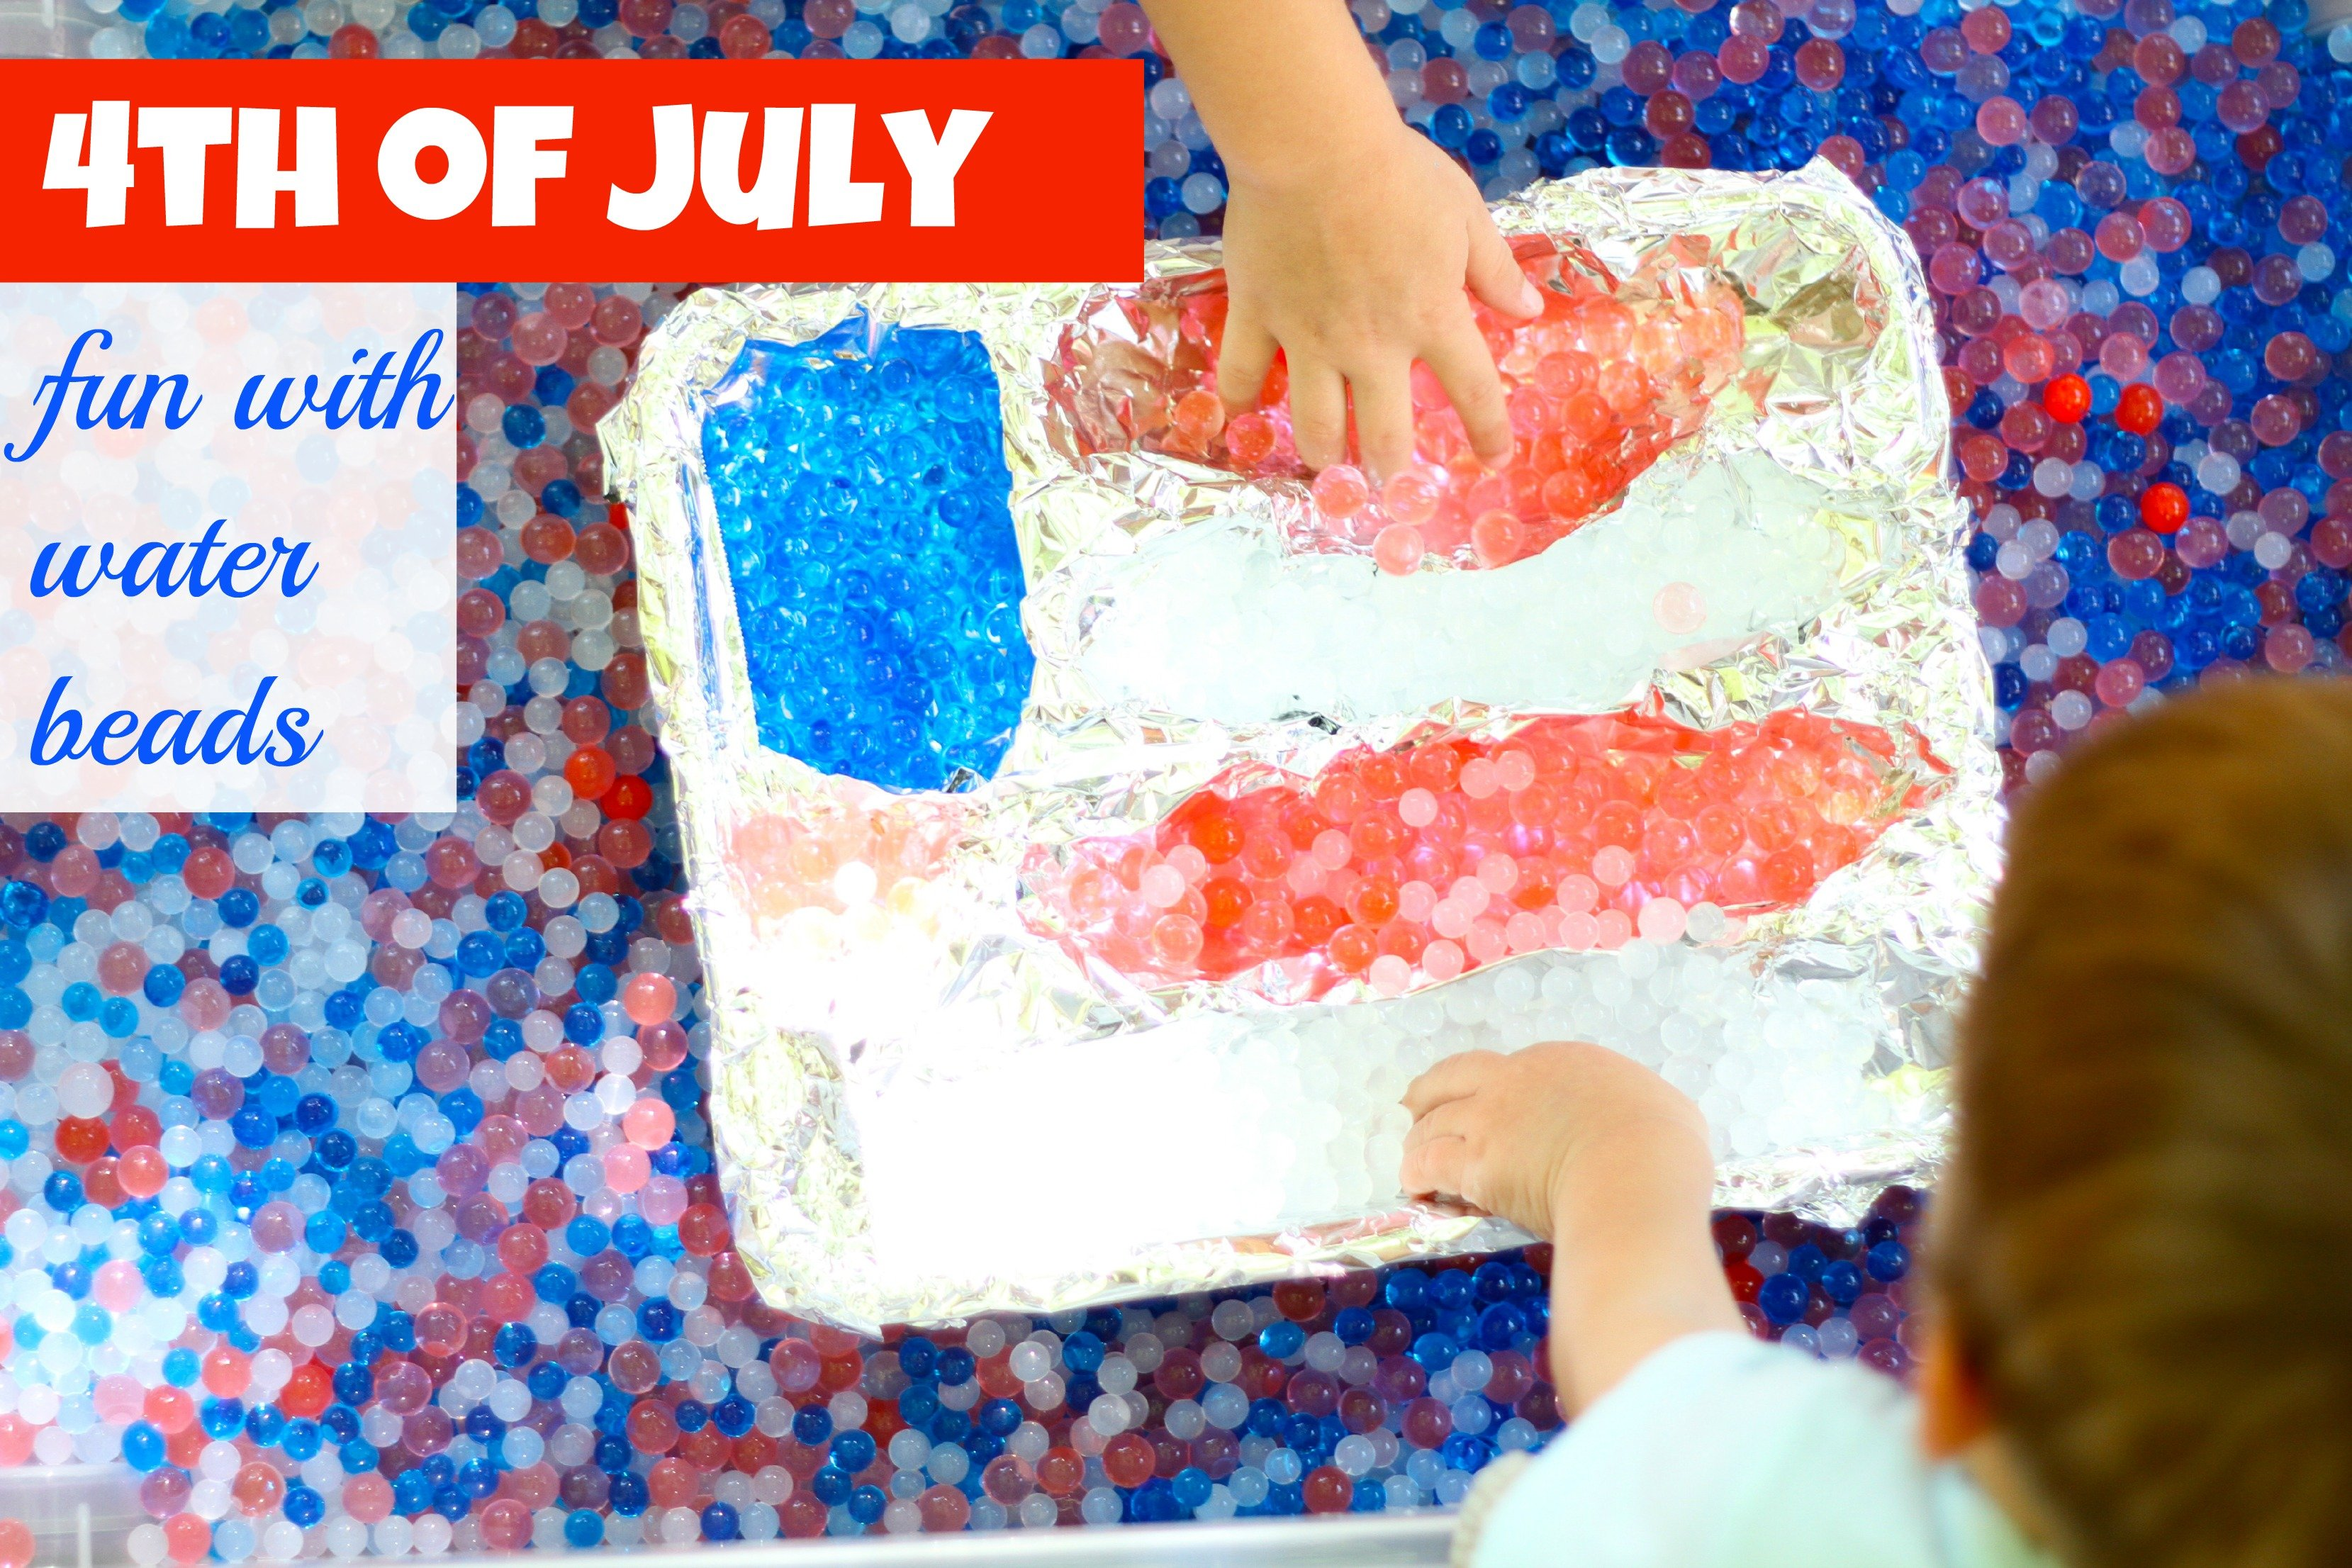 4th Of July Fun With Water Beads